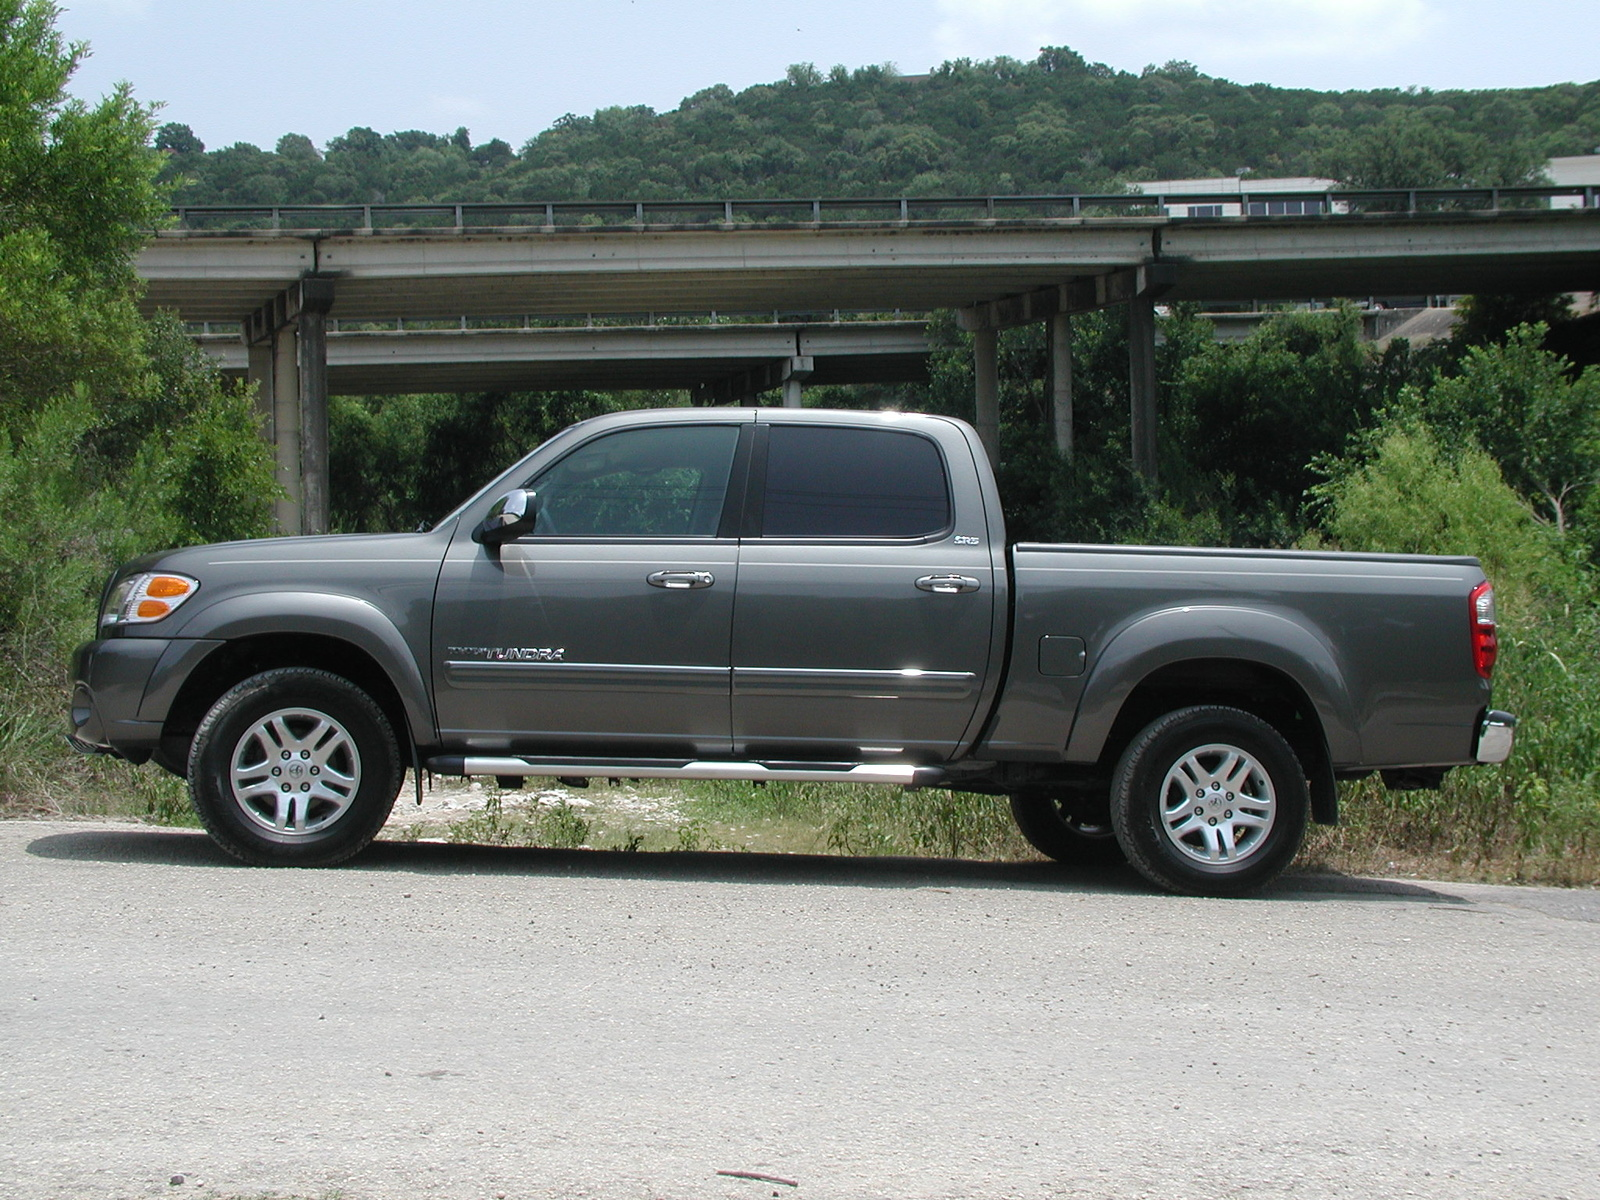 2004 Toyota Tundra Photos Informations Articles Truck Lifted 4